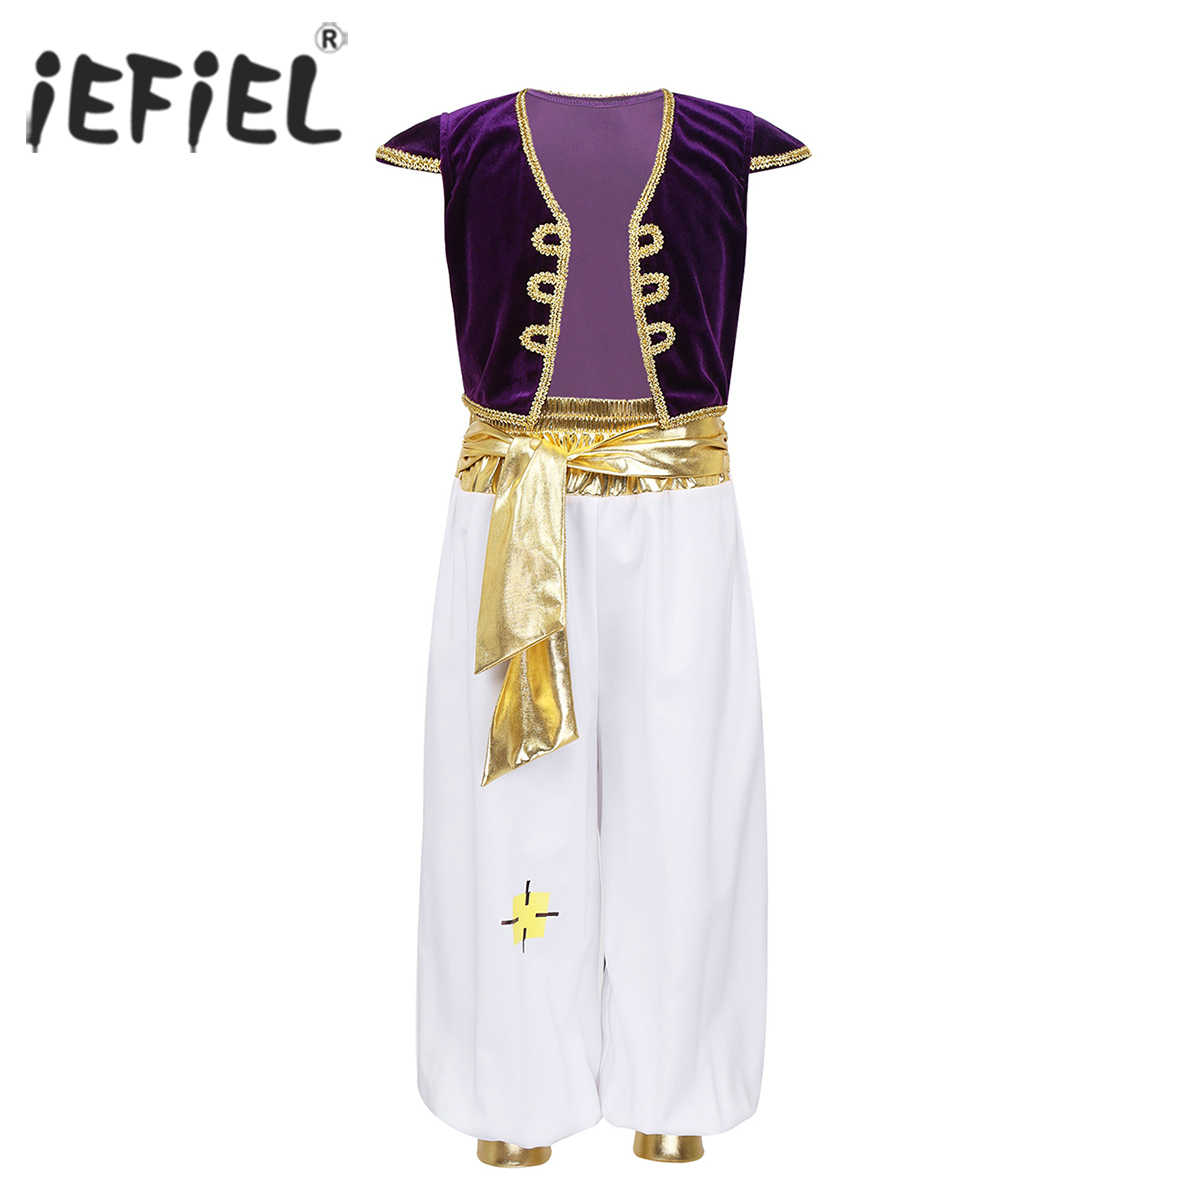 Kids Boys Arabian Prince Lamp Costumes Outfit Cap Sleeves Vest Waistcoat with Pants Set for Halloween Dress Up Cosplay Party